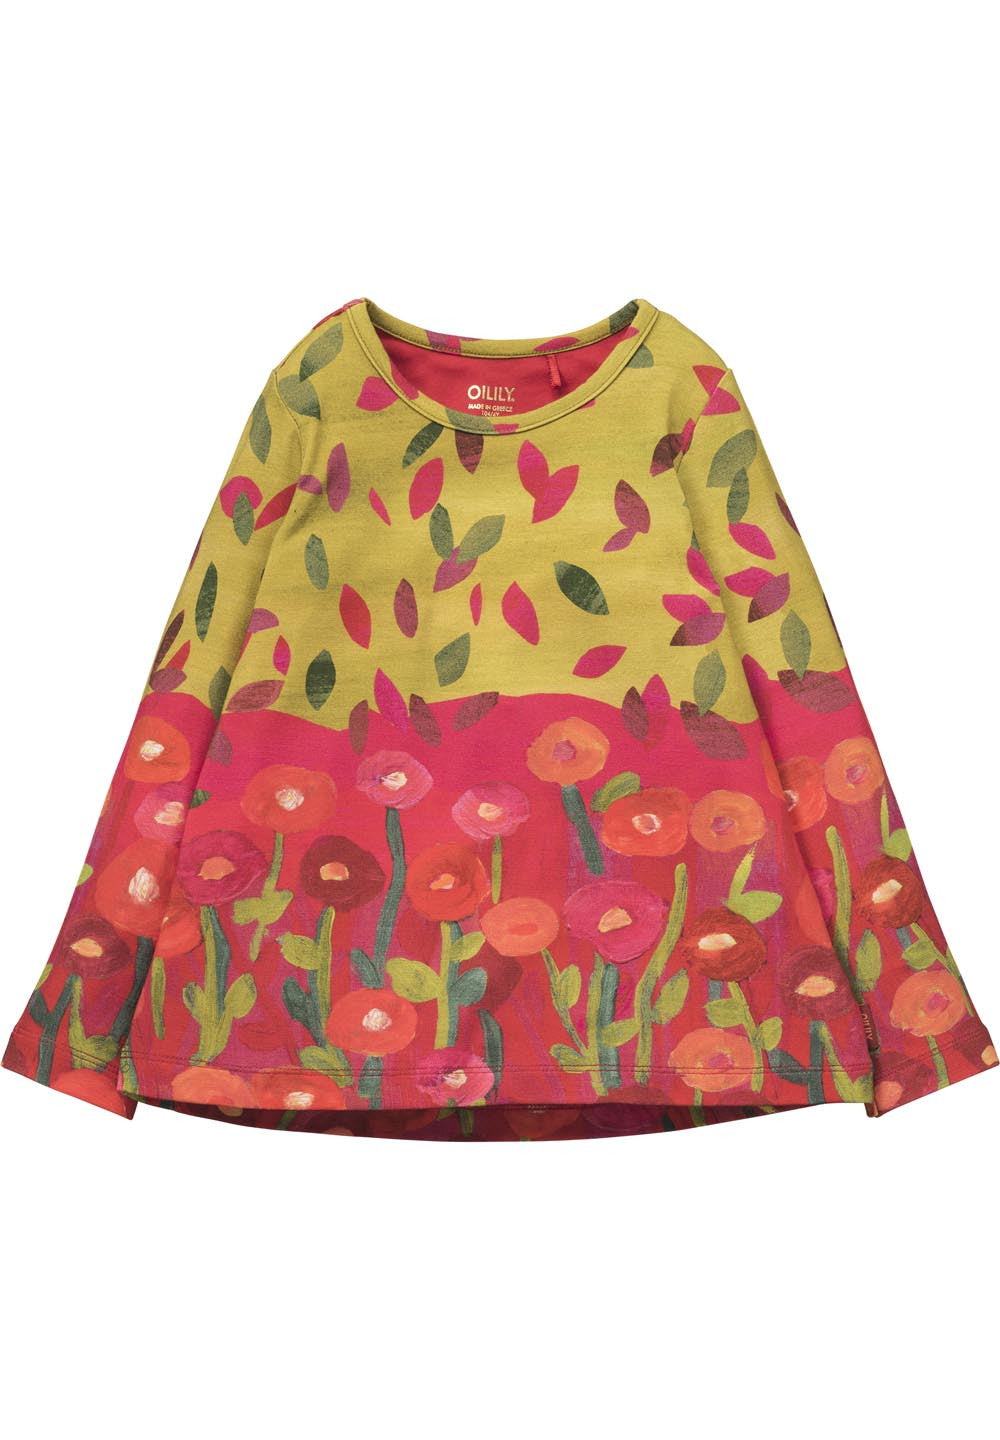 AW17 Oilily Girls Thermeline Long Sleeve Fancy Top 44 Panel Bottom Flowers Top Leaves - Liquorice Kids